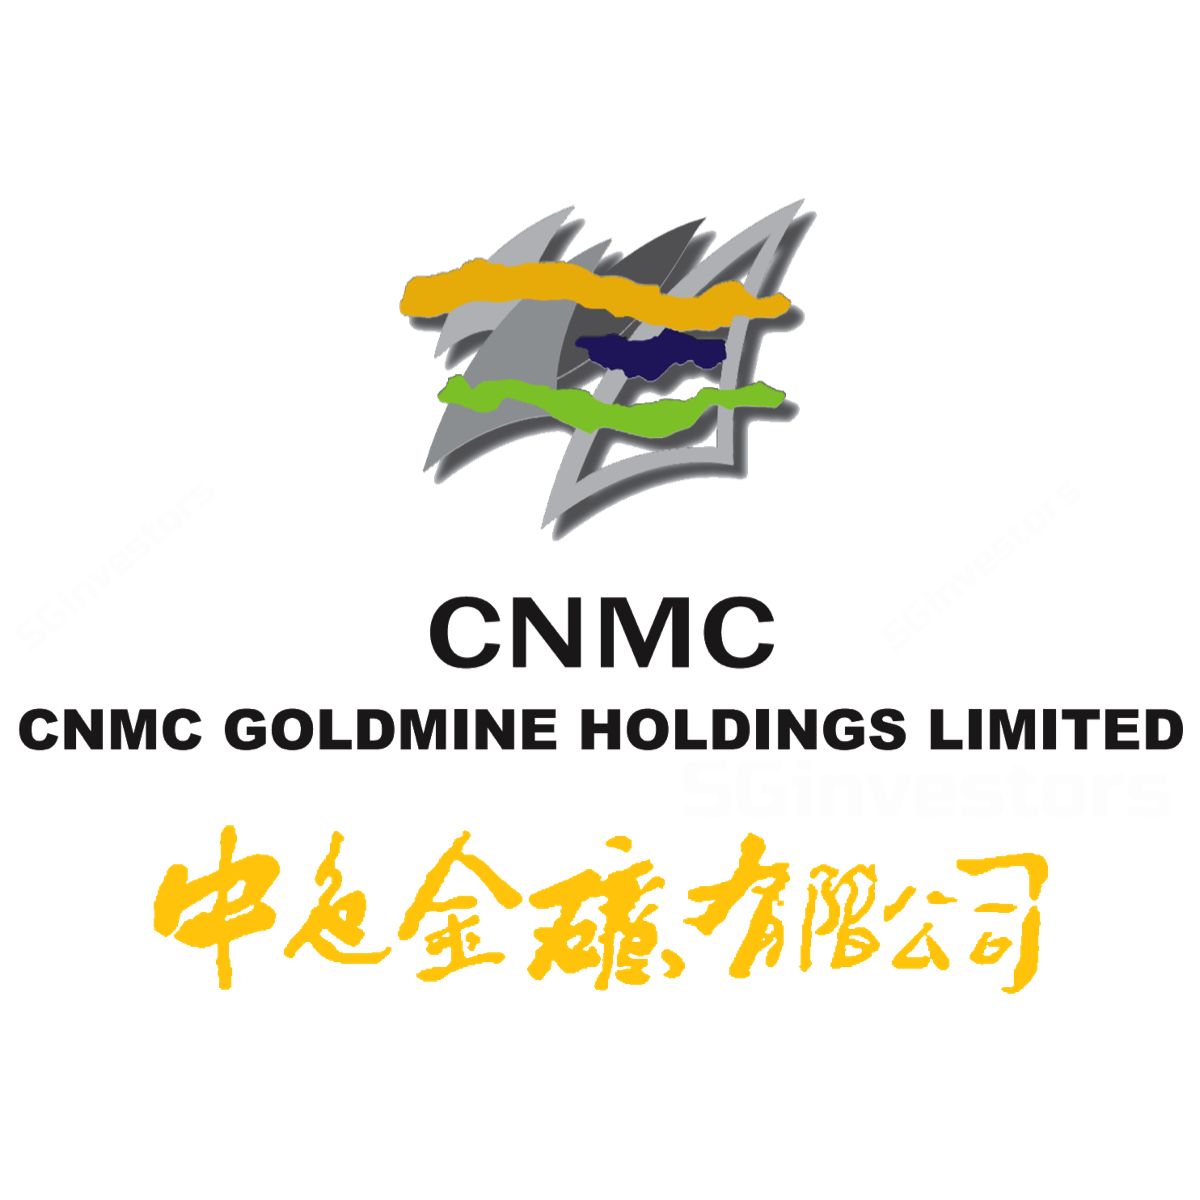 CNMC Goldmine Holdings Limited - Phillip Securities 2018-05-18: Satisfactory Cil Results